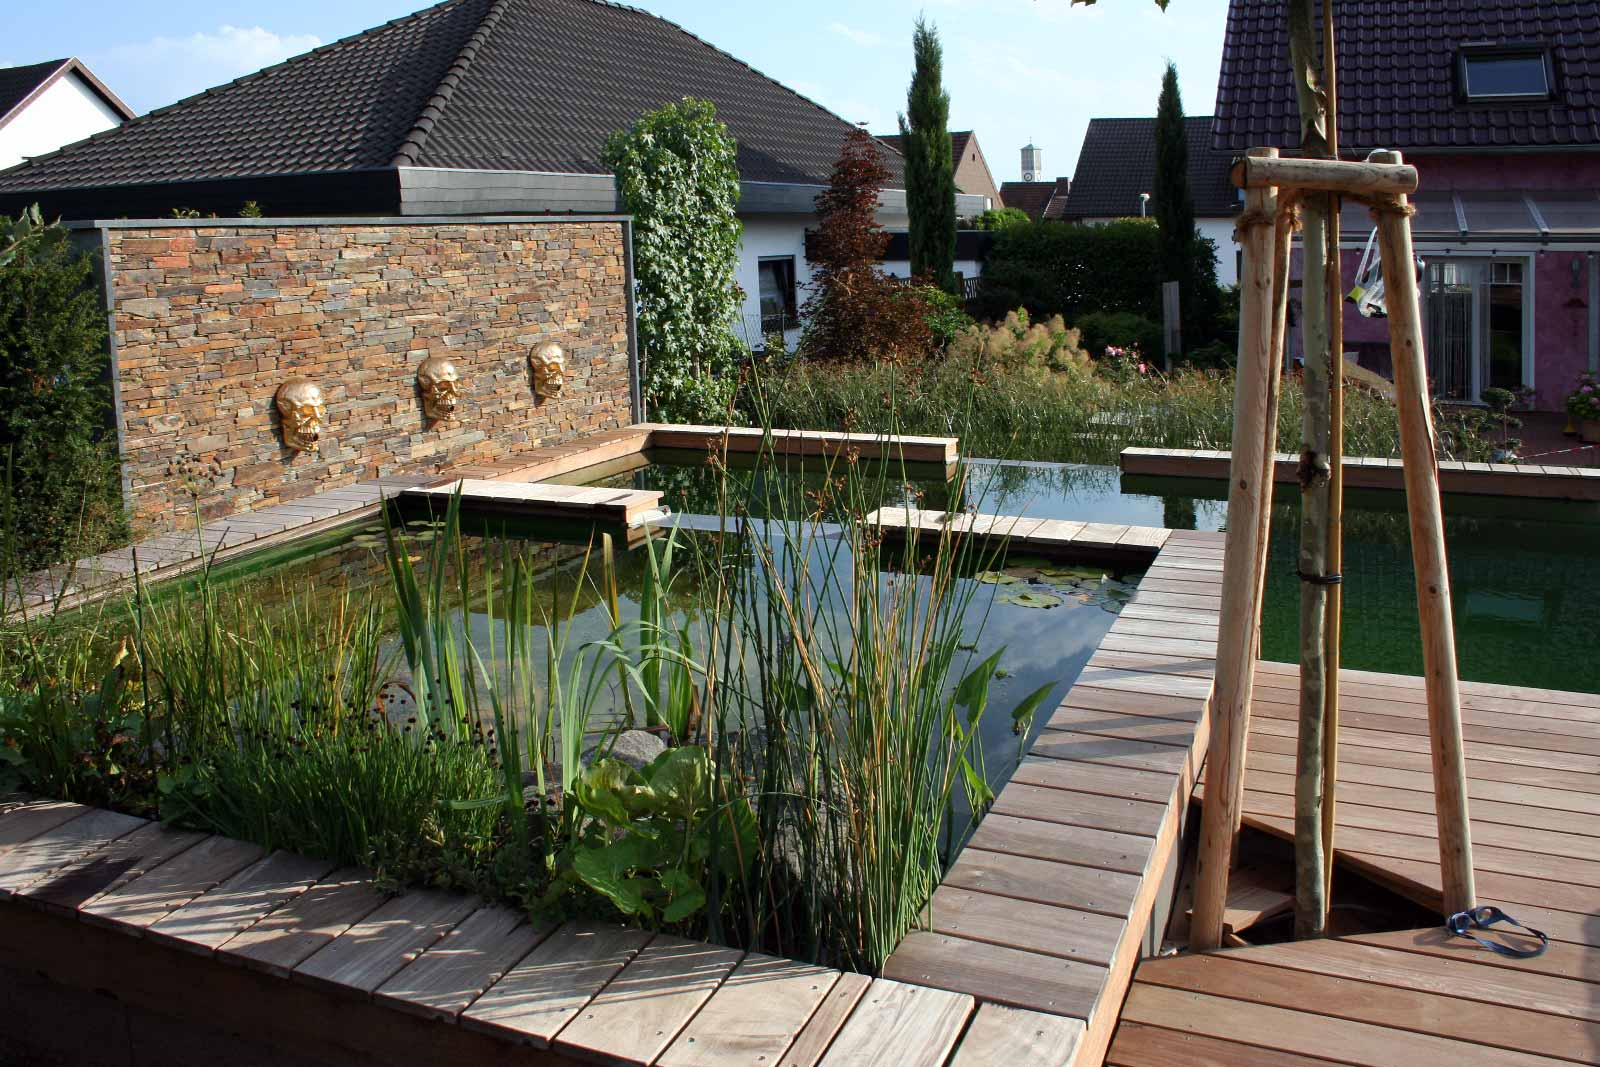 Naturpool in ruhiger Lage